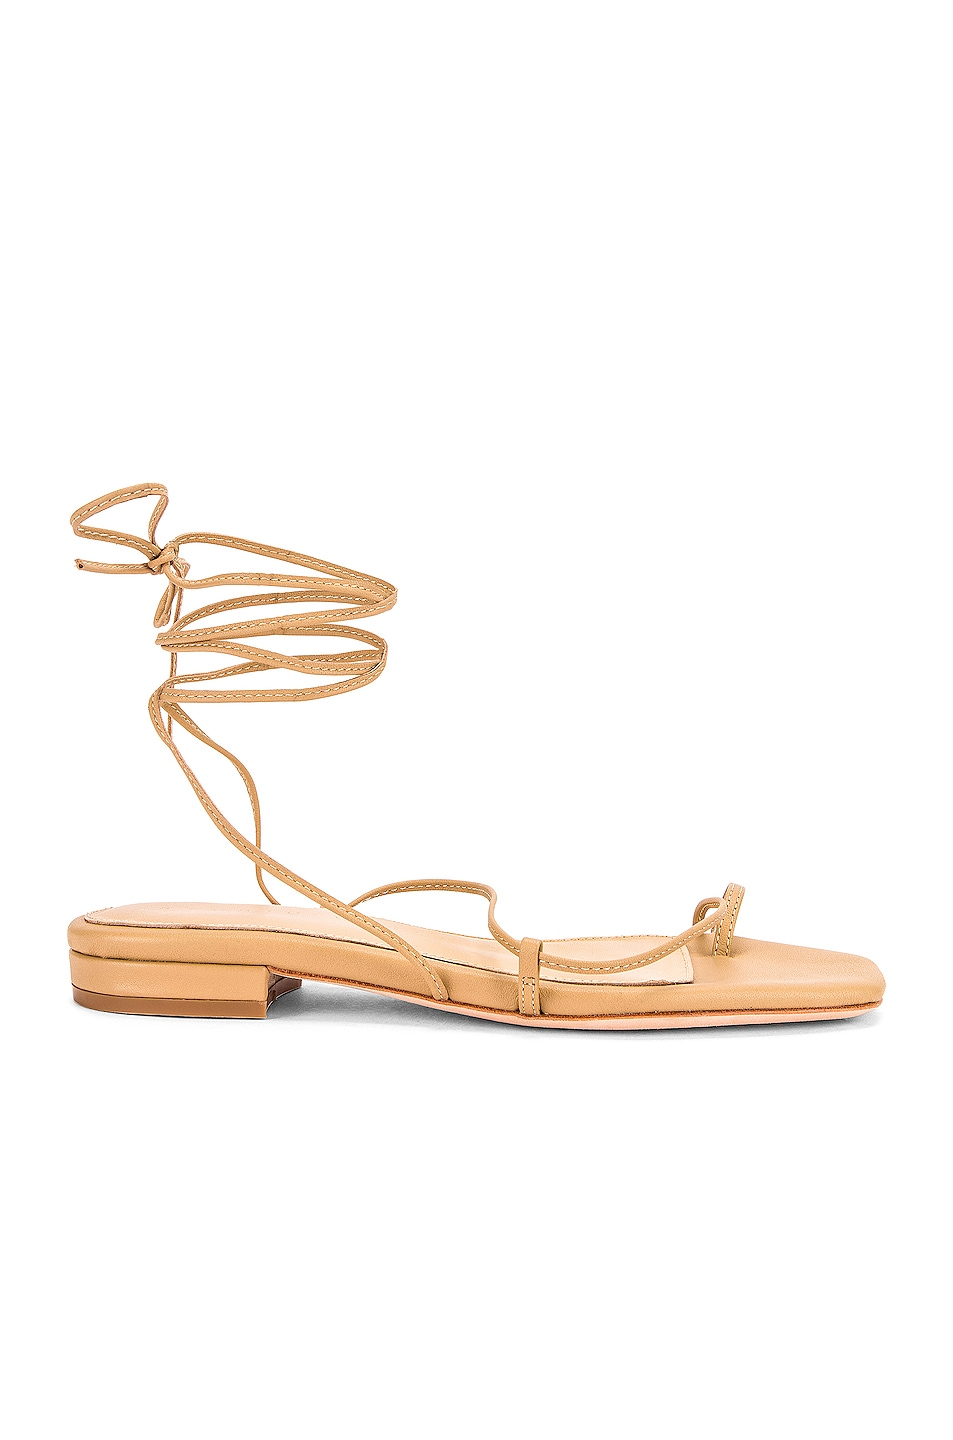 Image 1 of Studio Amelia 1.1 Sandal in Nude